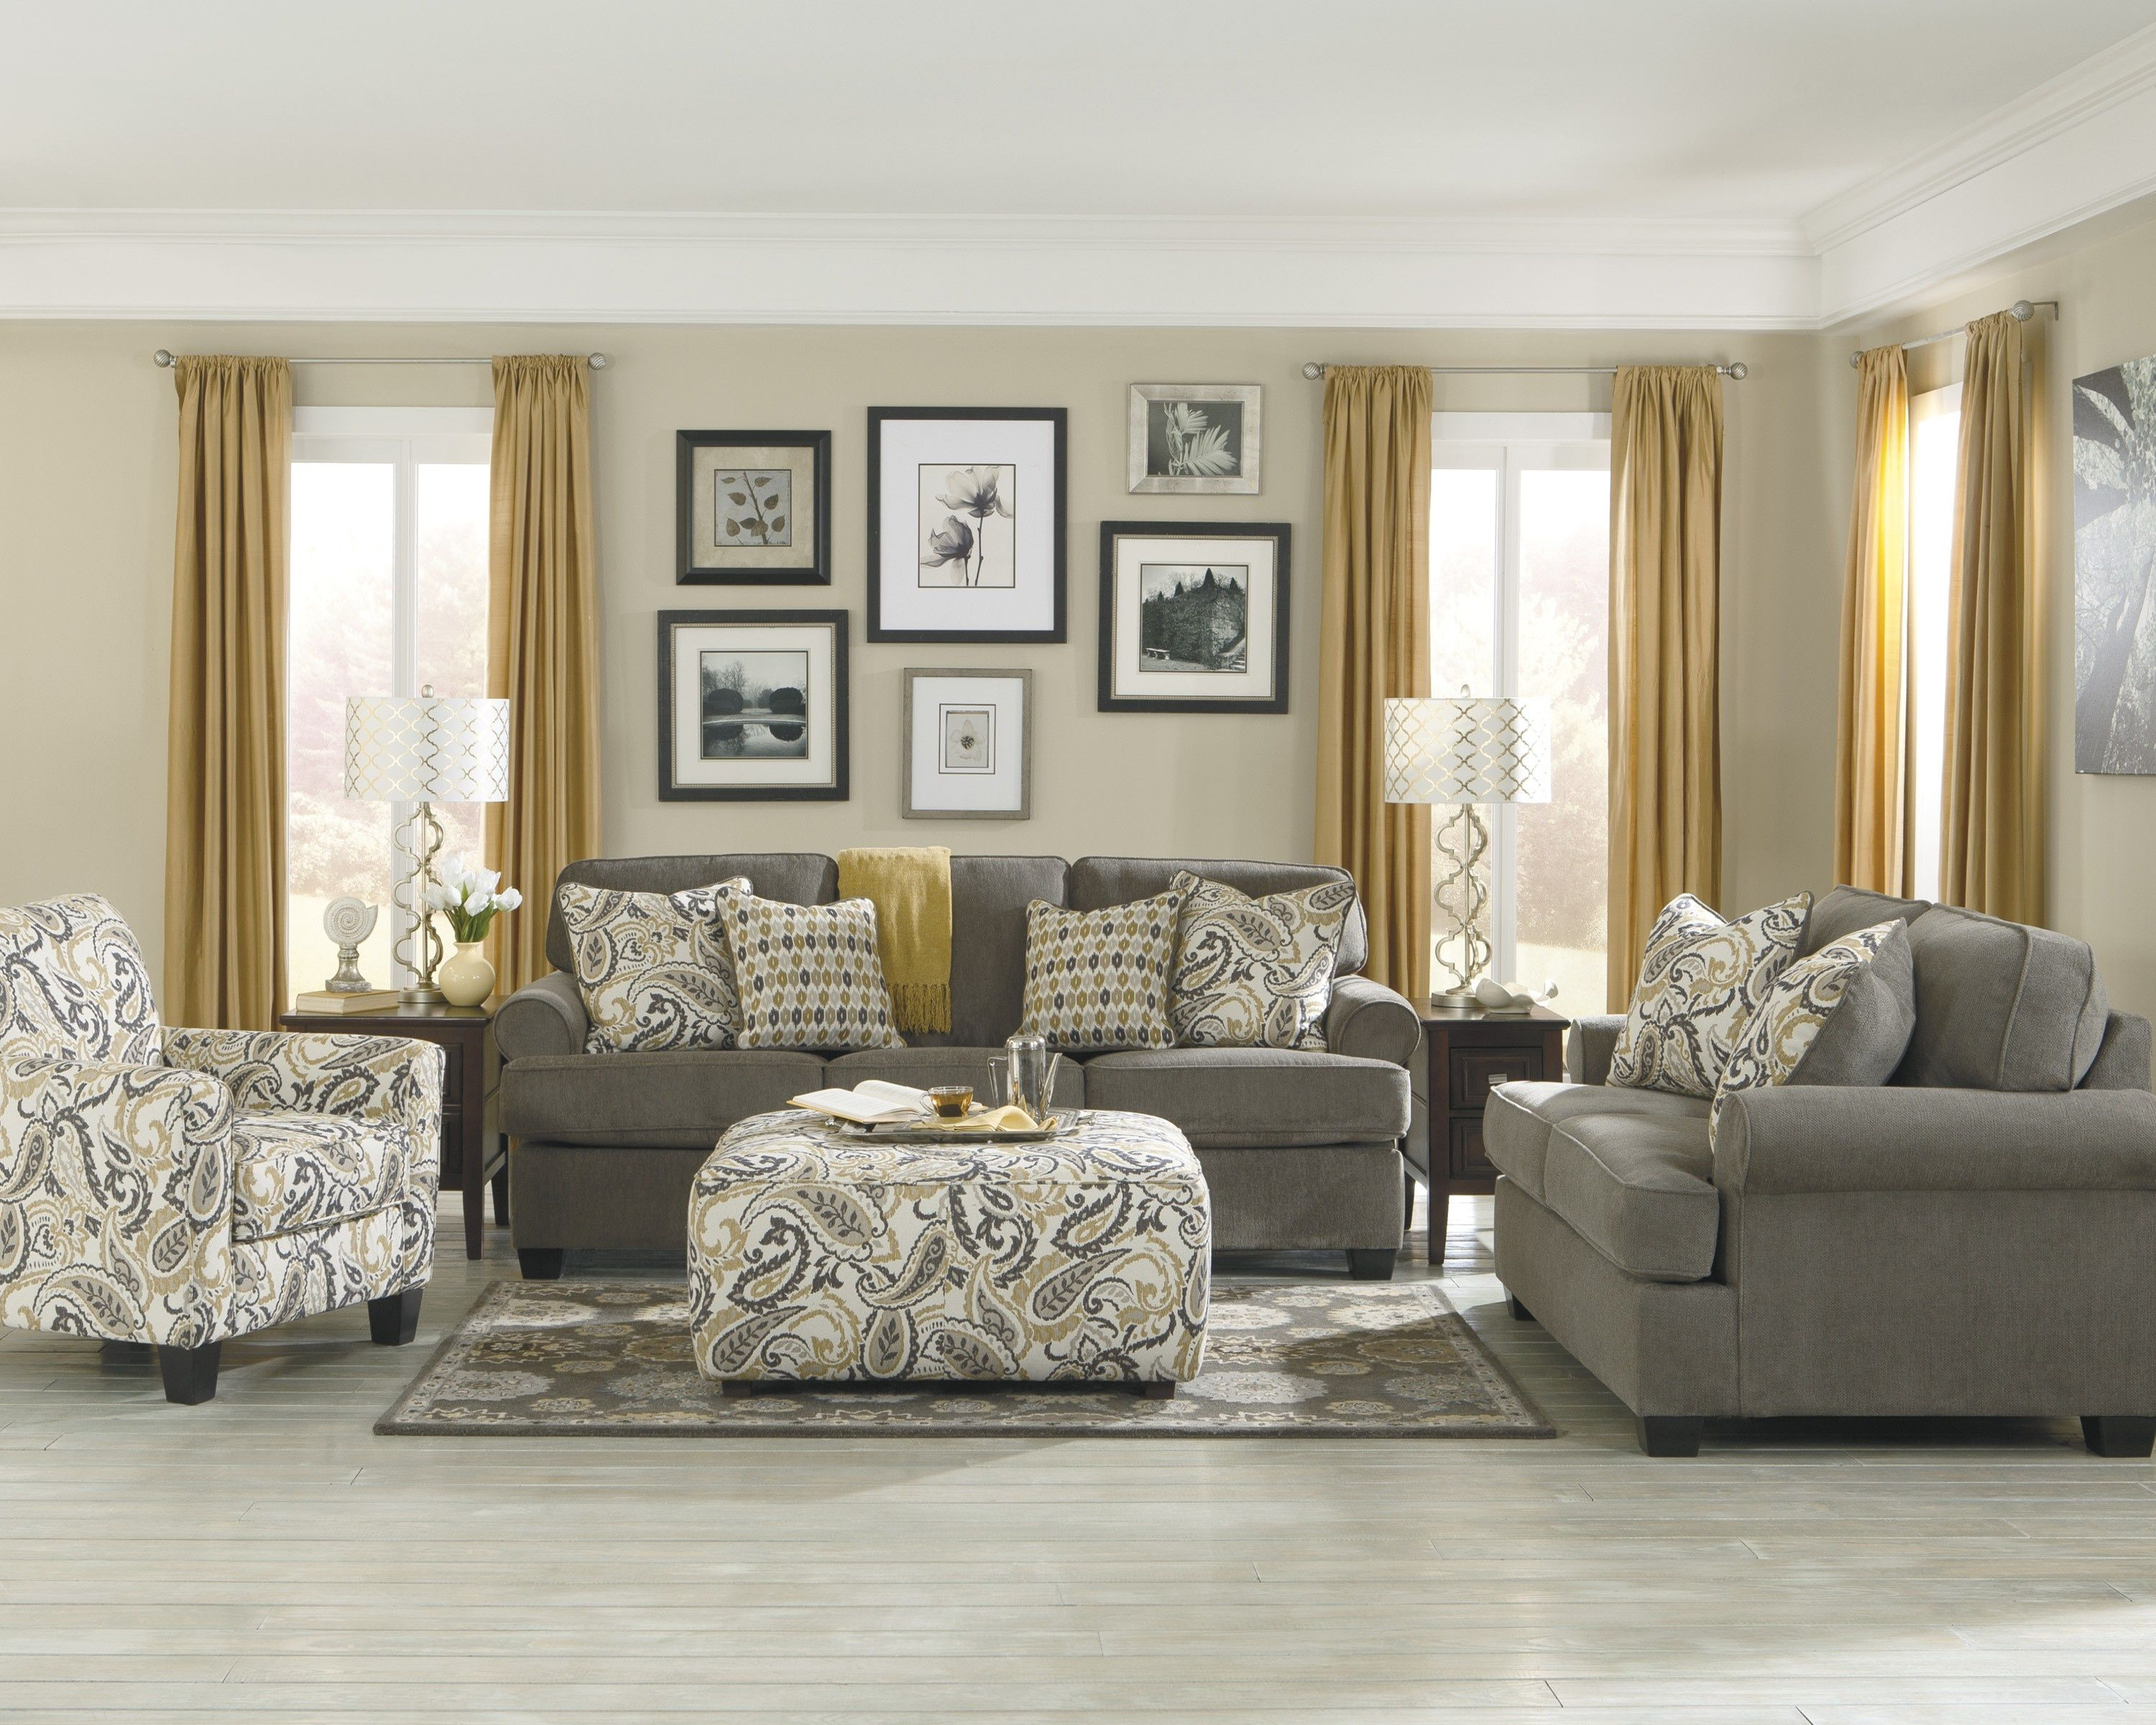 Good Ideas Living Room Furniture Set Ideas Grey Furniture Living Room Gold Living Room Brown Living Room